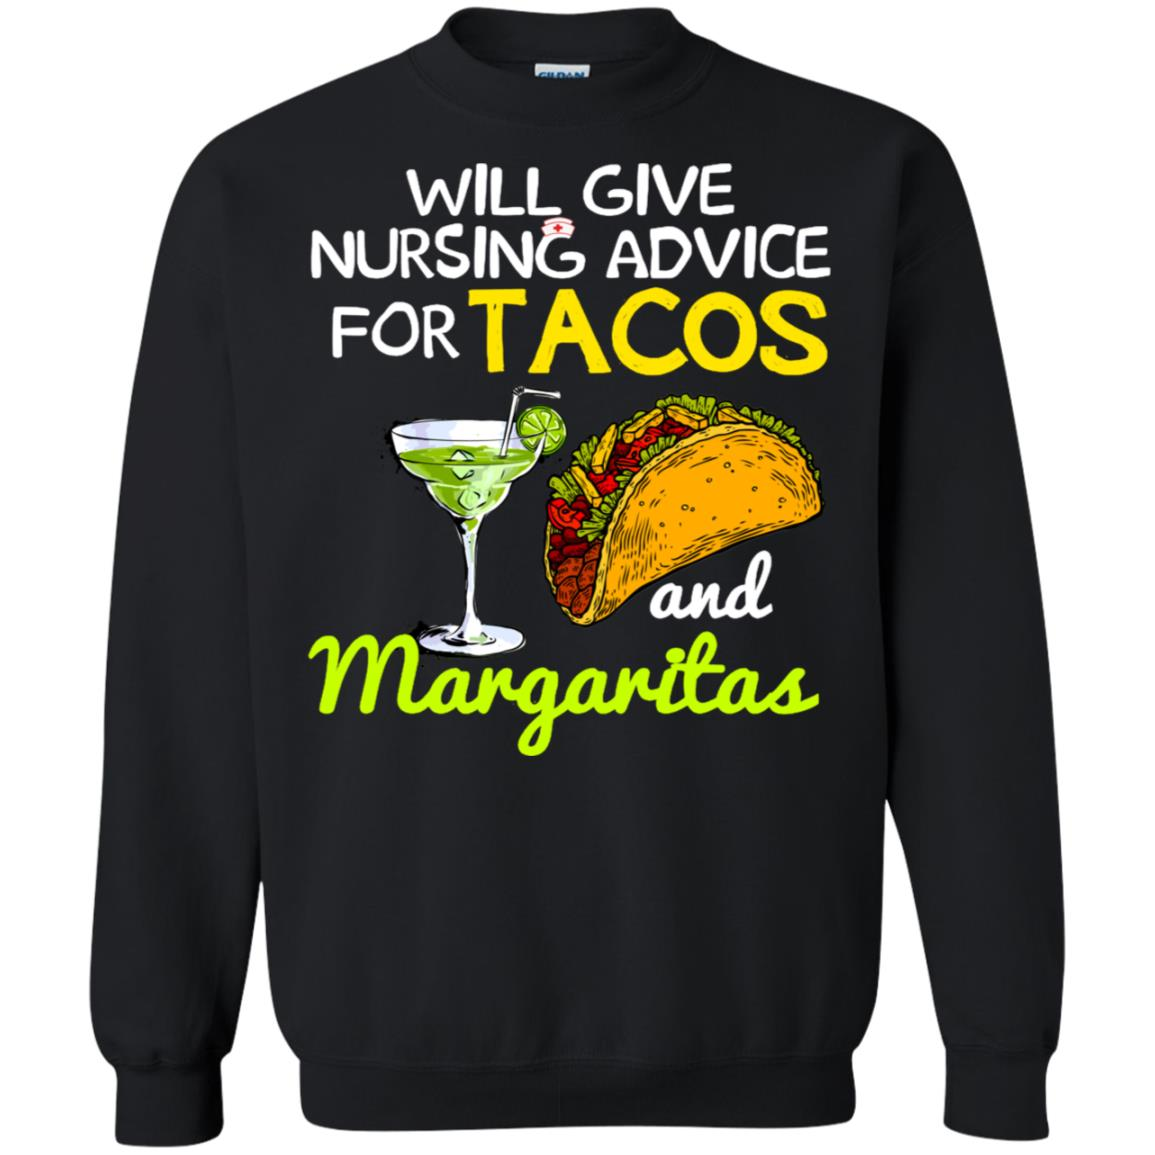 Will give nursing advice for tacos margaritas